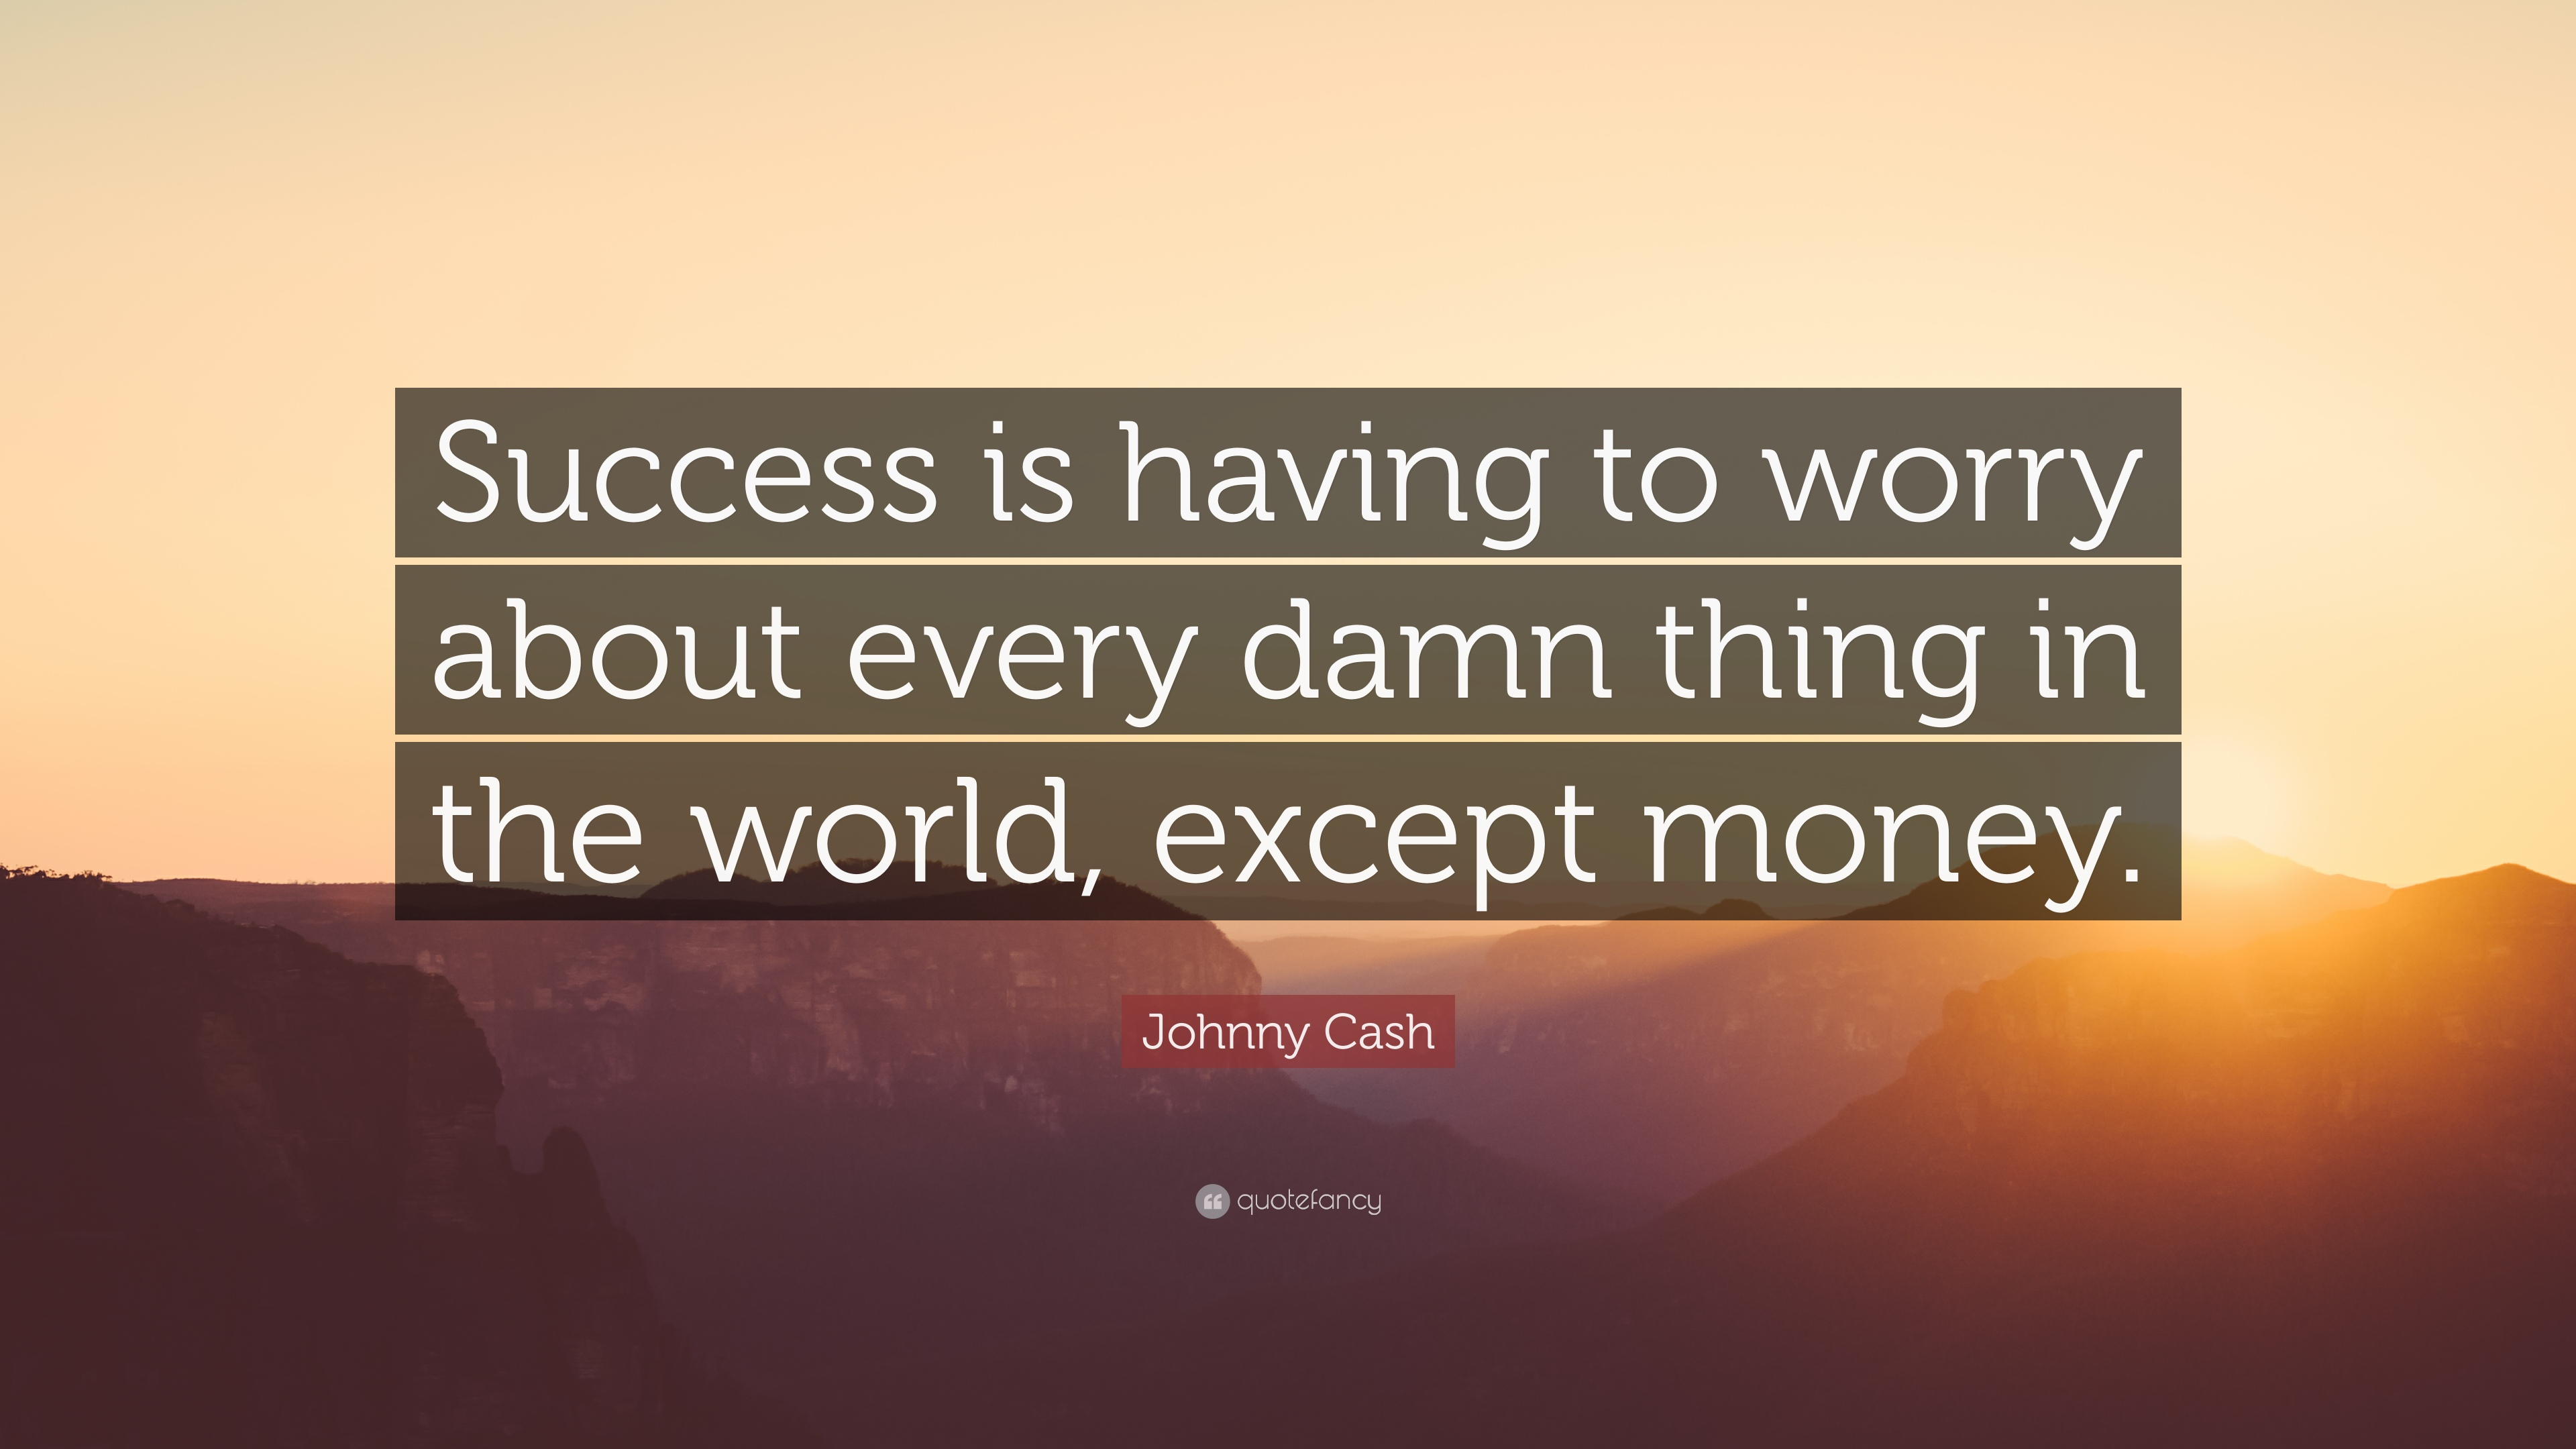 Money Motivation Quotes Quotes About Money 42 Wallpapers  Quotefancy